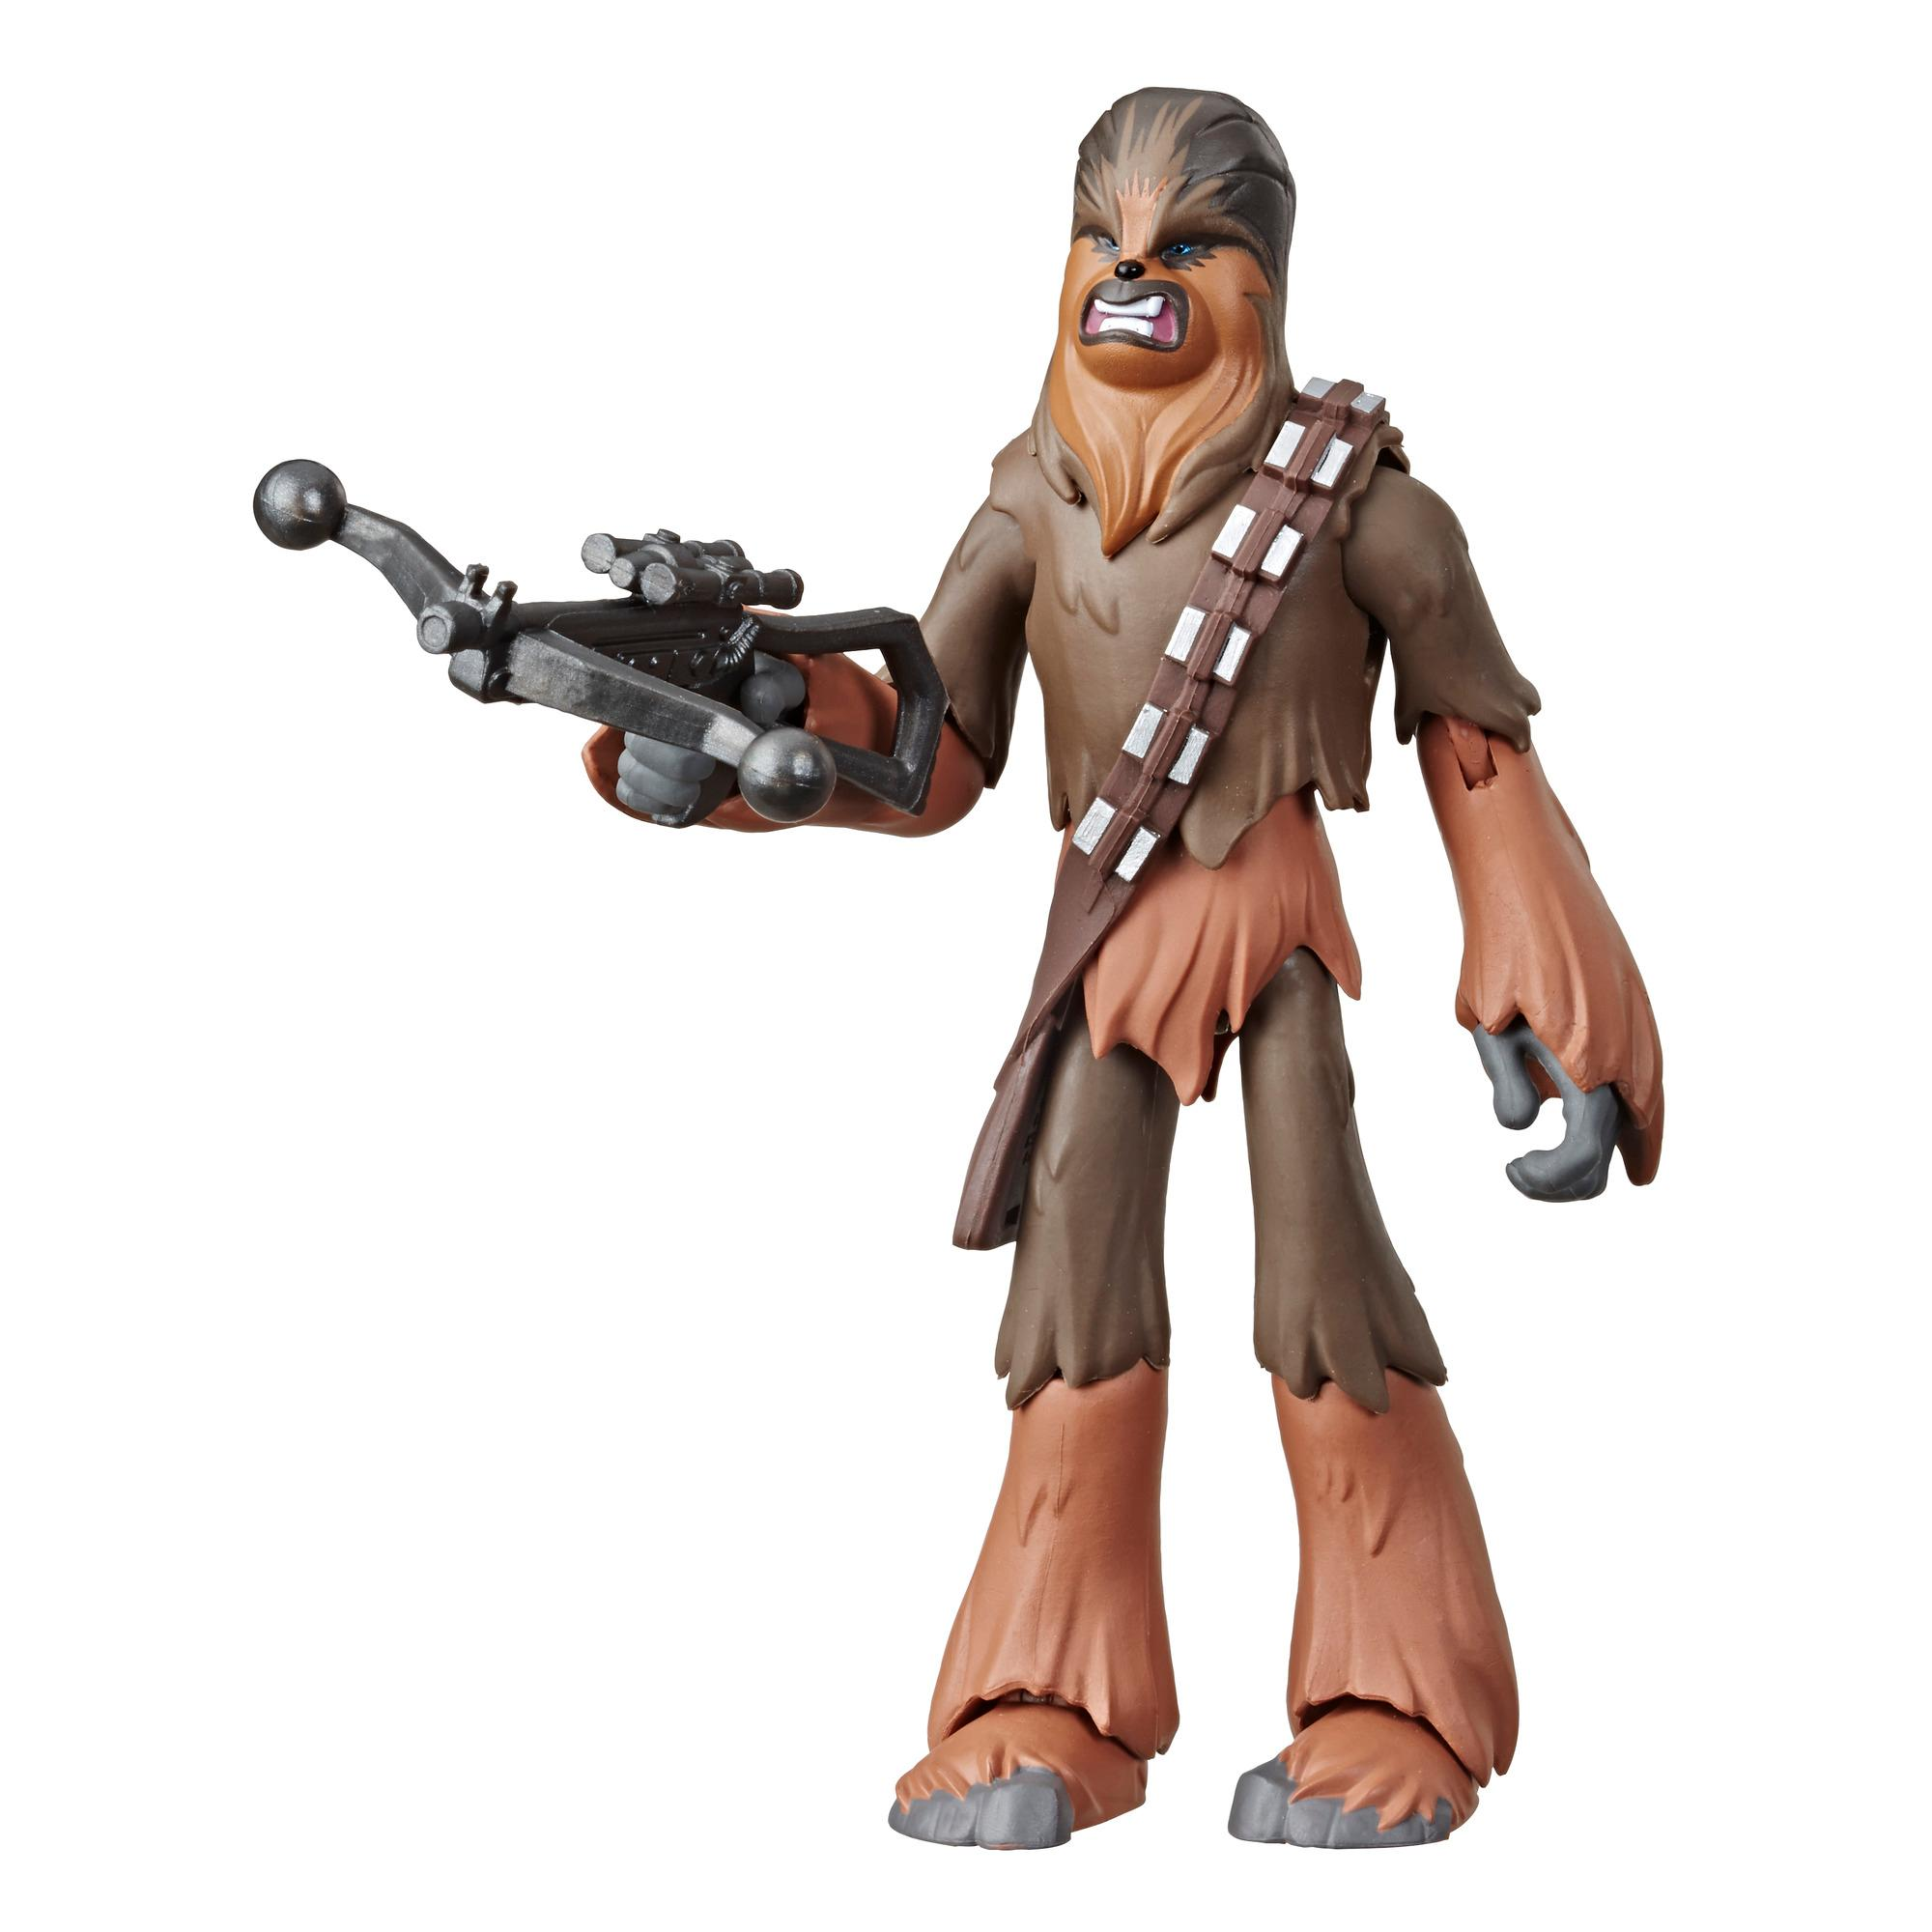 Star Wars Galaxy of Adventures - Star Wars: The Rise of Skywalker - Figura de acción de Chewbacca de 12,5 cm - Juguete con divertido movimiento de acción